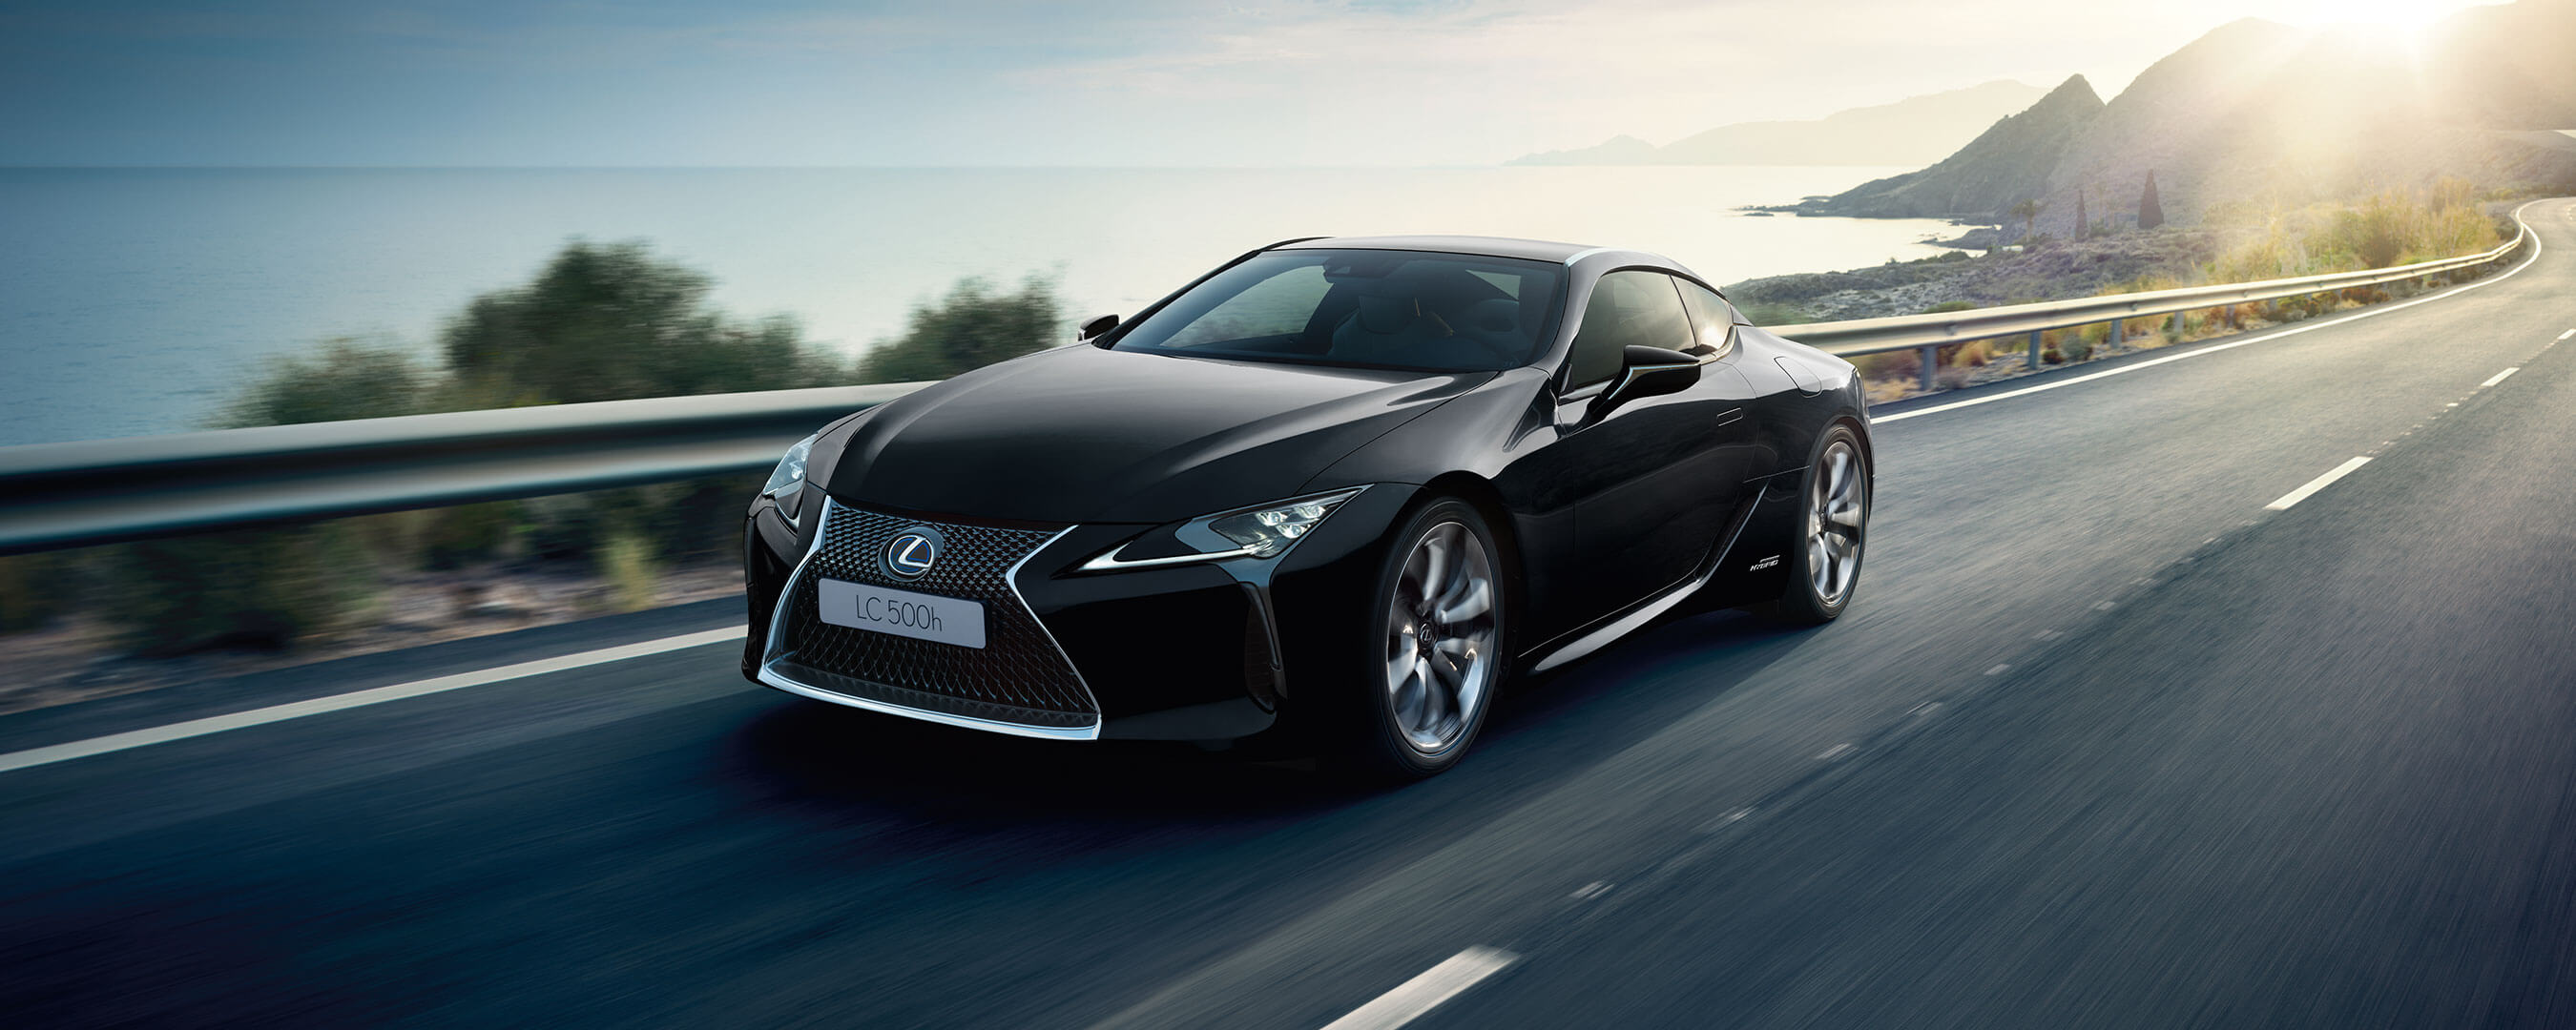 2017 lexus lc 500h experience hero opt 2 exterior front